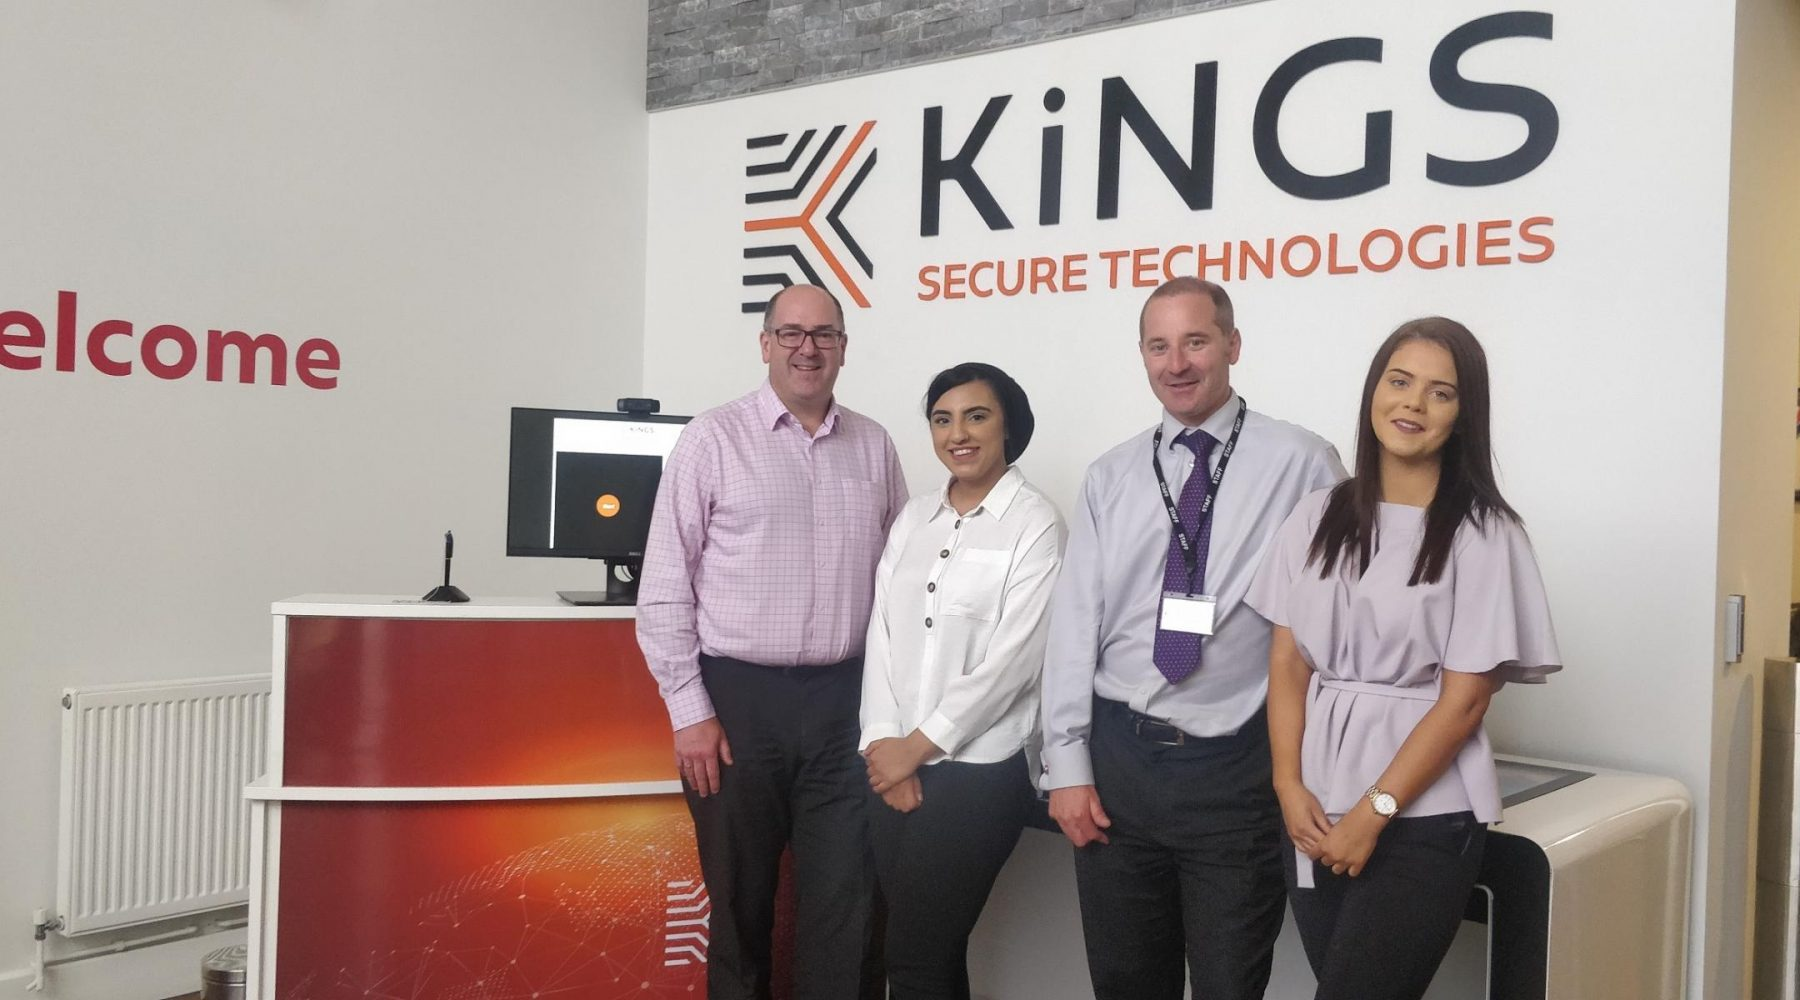 Bradford security firm Kings picks graduates